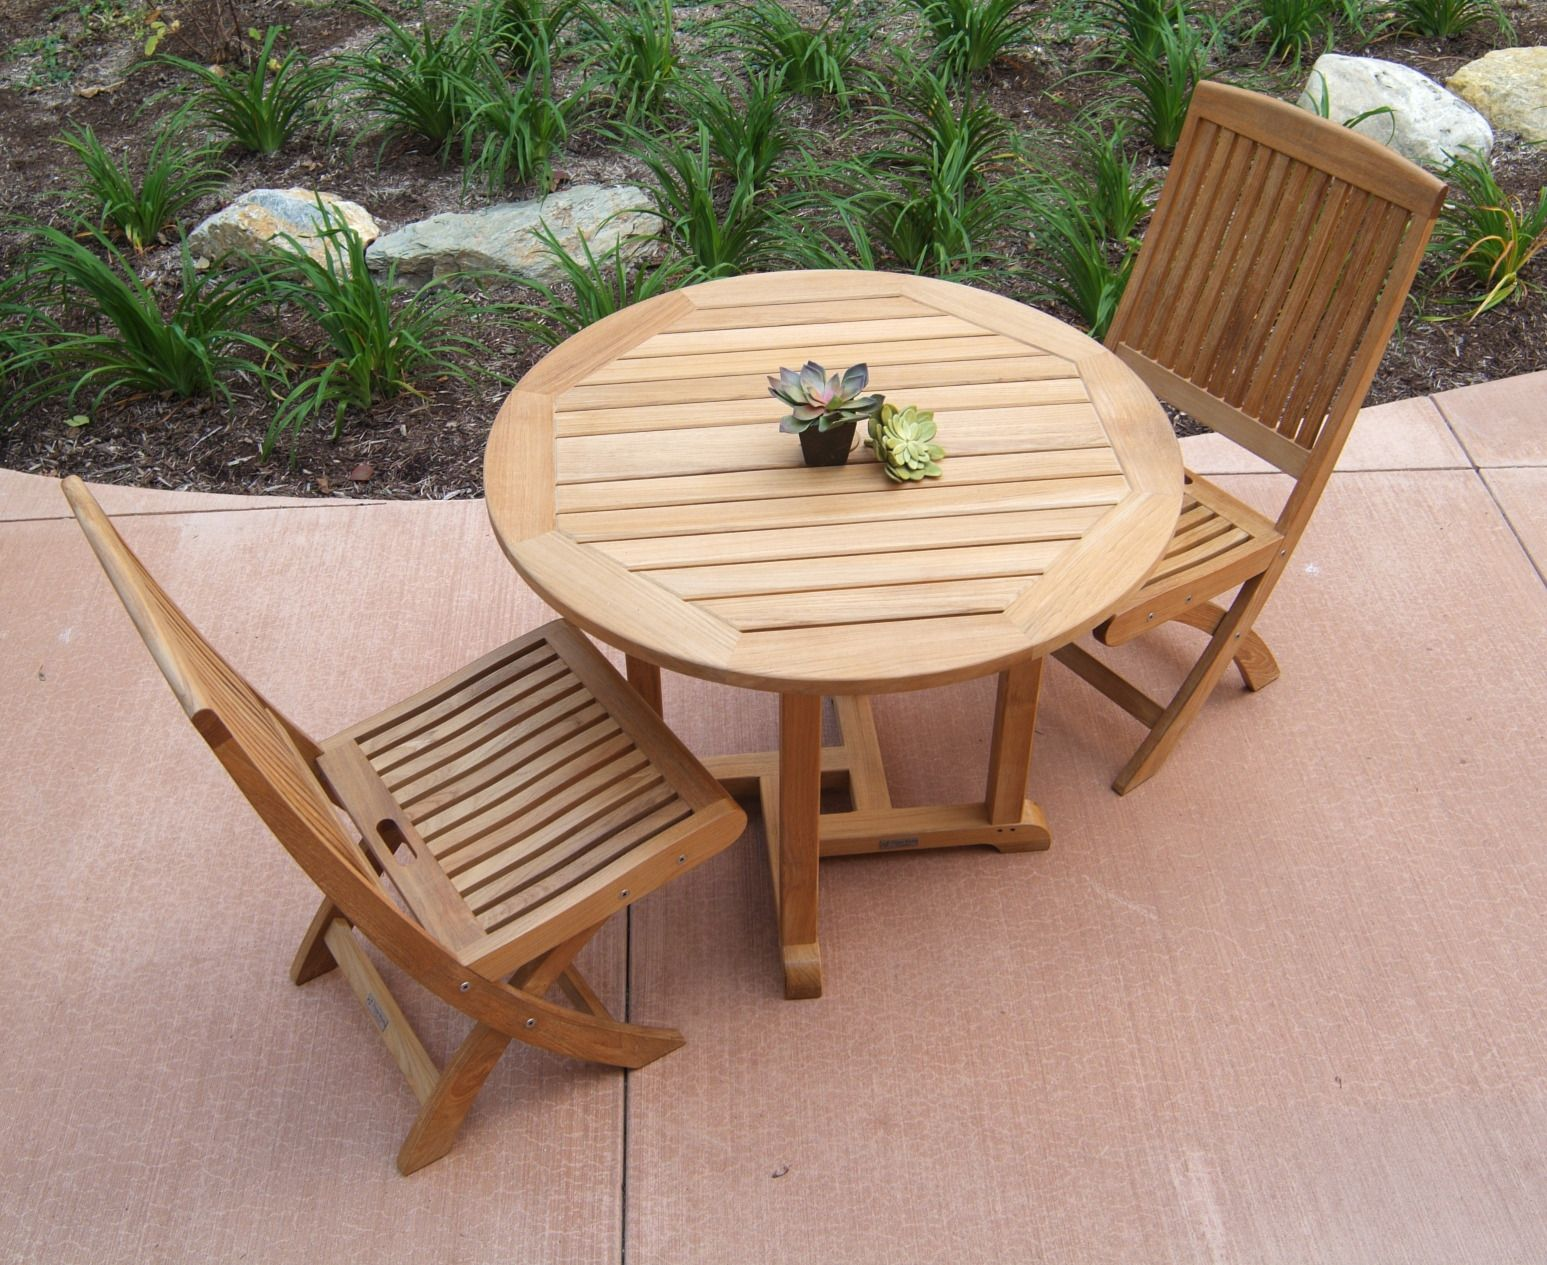 Round Teak Patio Table Best Home Office Furniture Check More - Round teak patio table and chairs